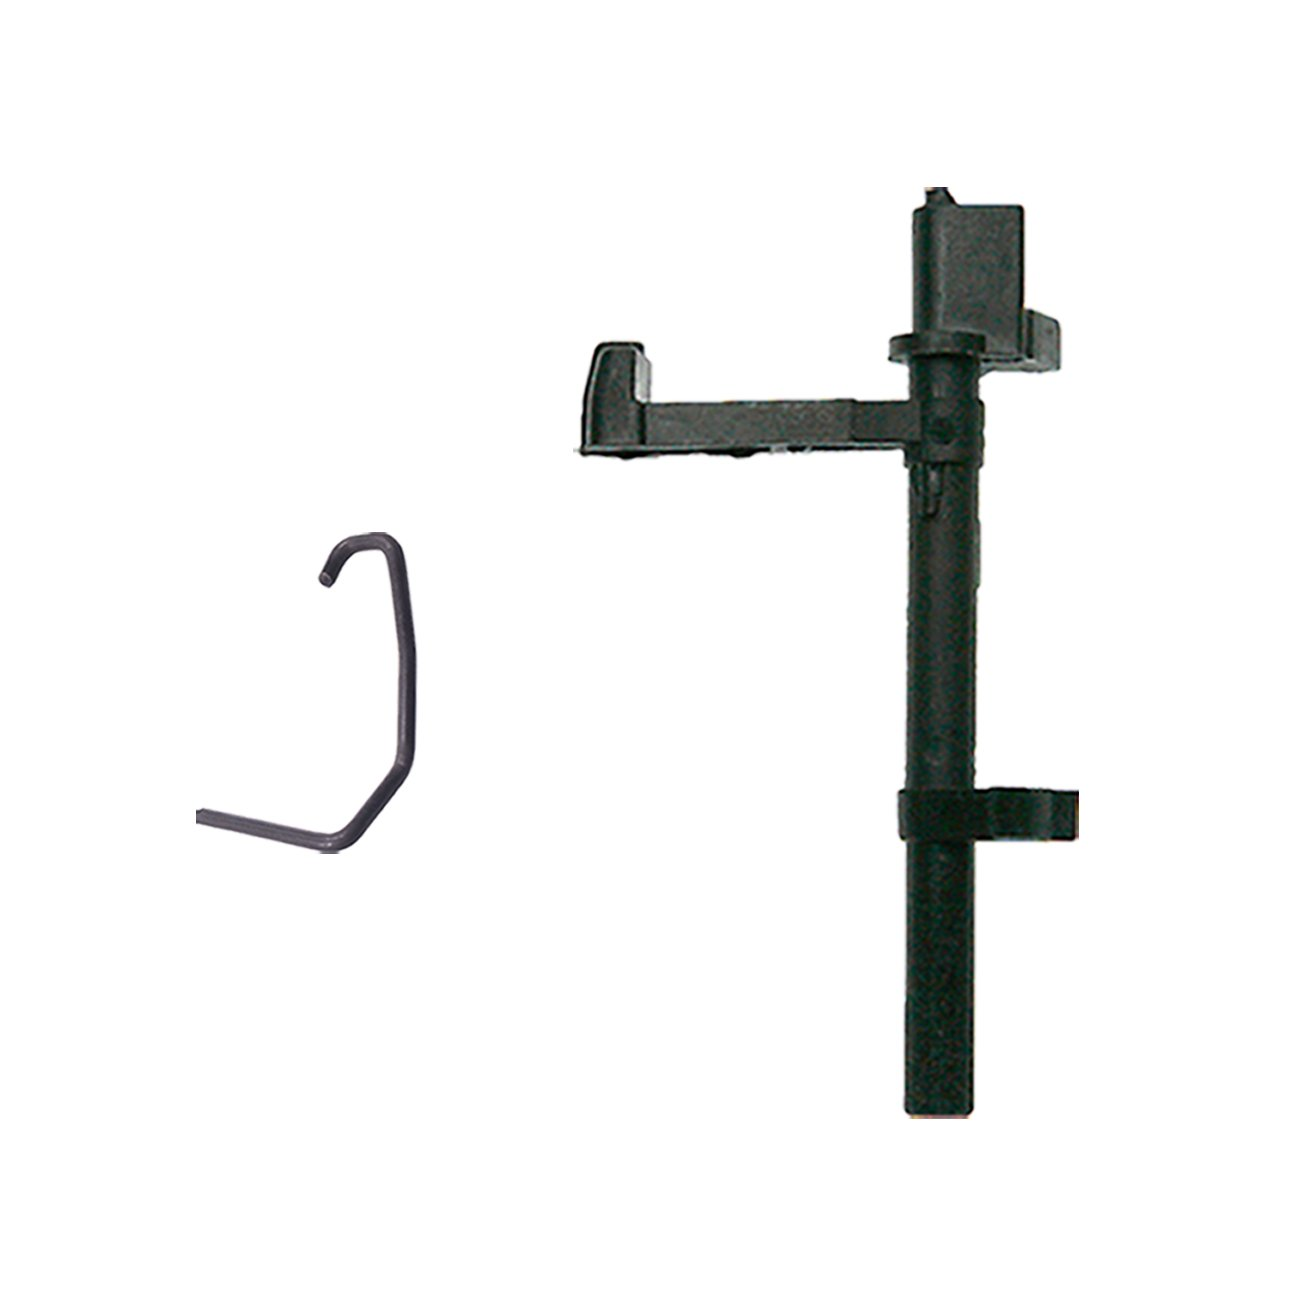 Amazon jrl new choke rod switch shaft fit stihl 017 018 ms170 amazon jrl new choke rod switch shaft fit stihl 017 018 ms170 ms180 chainsaw parts garden outdoor biocorpaavc Image collections